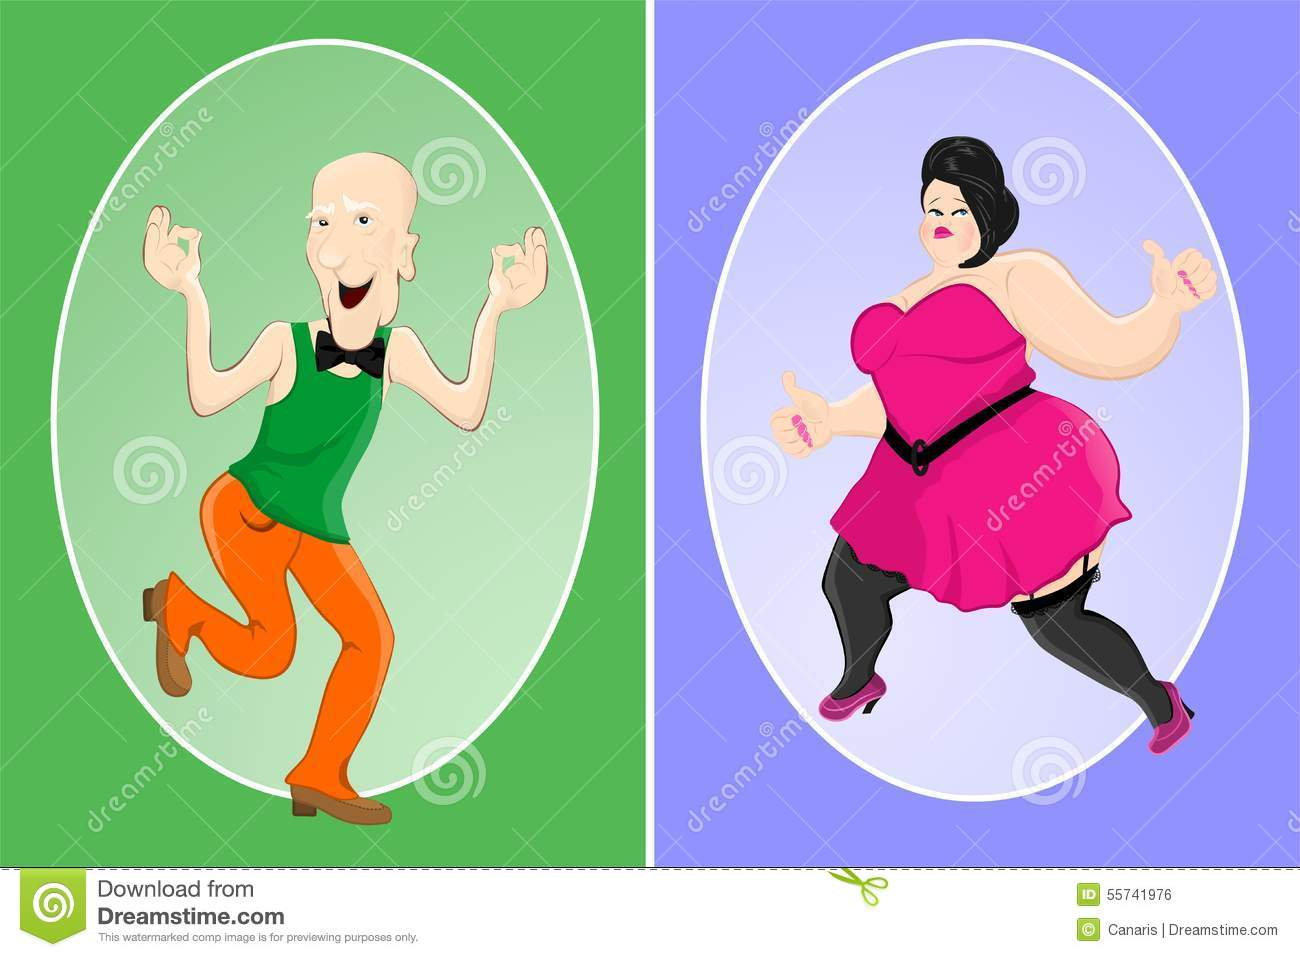 Slim Man and Fat Woman